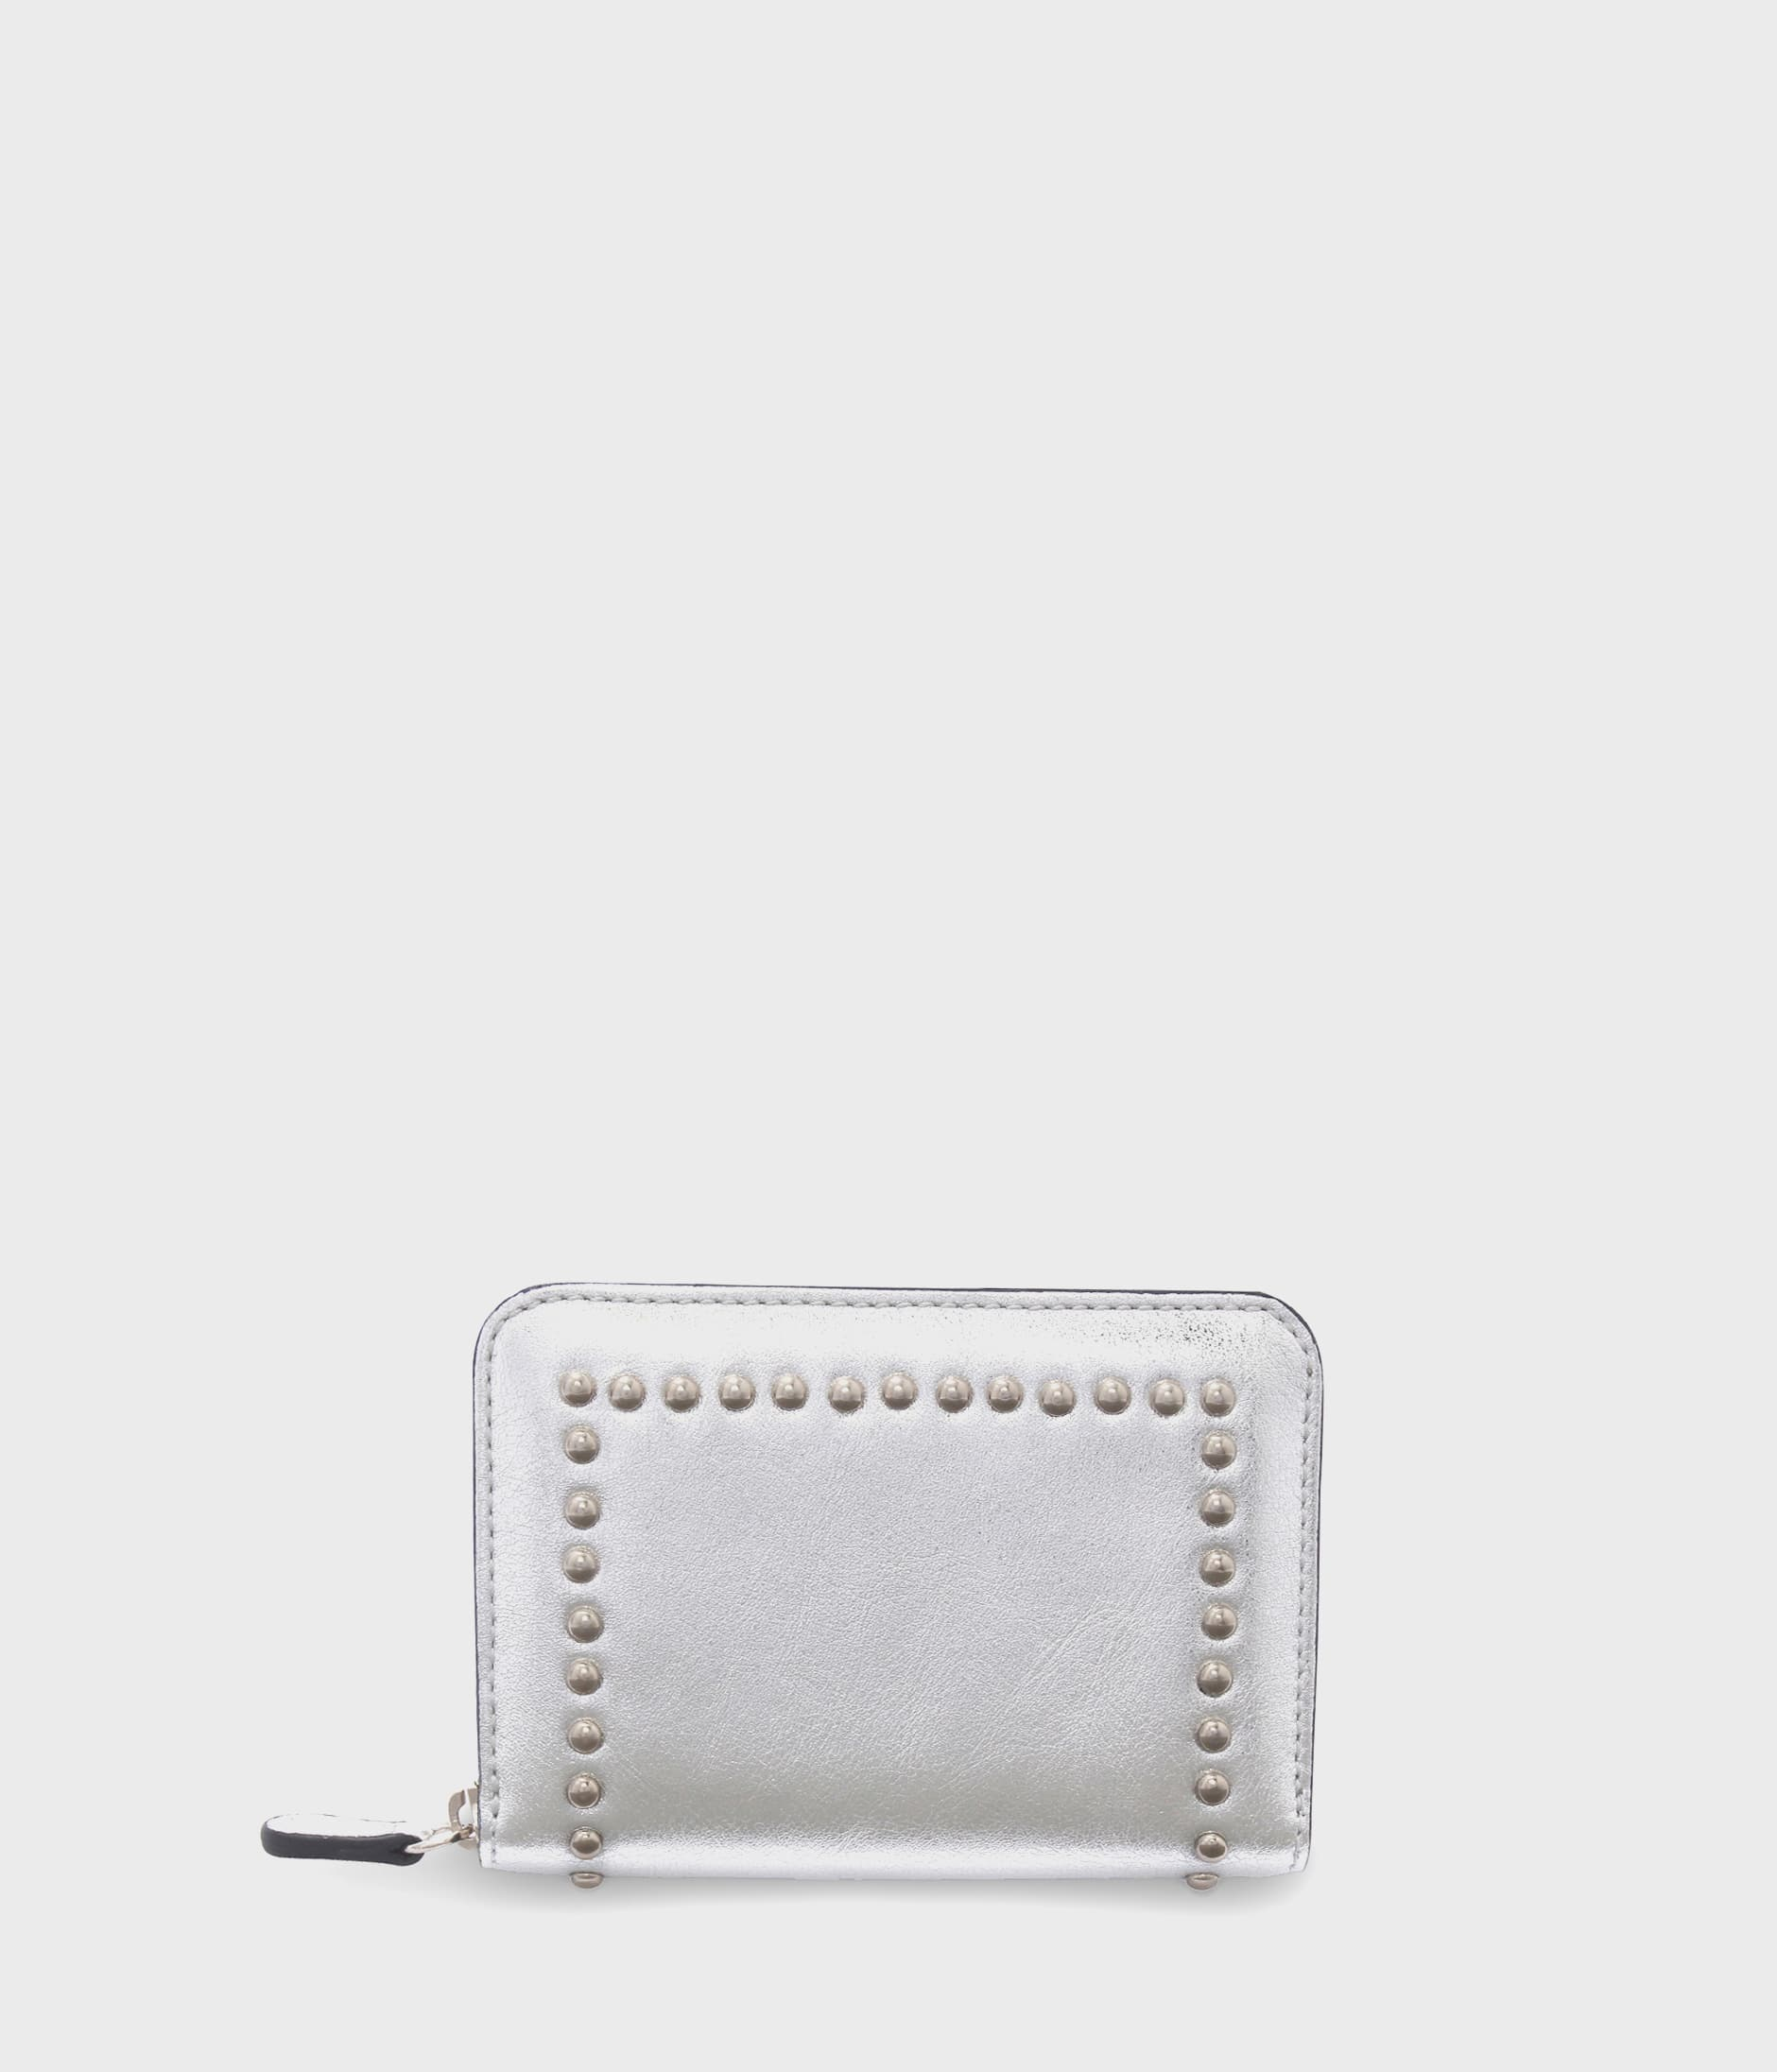 SMALL ZIP PURSE WITH STUDS 詳細画像 SILVER 1